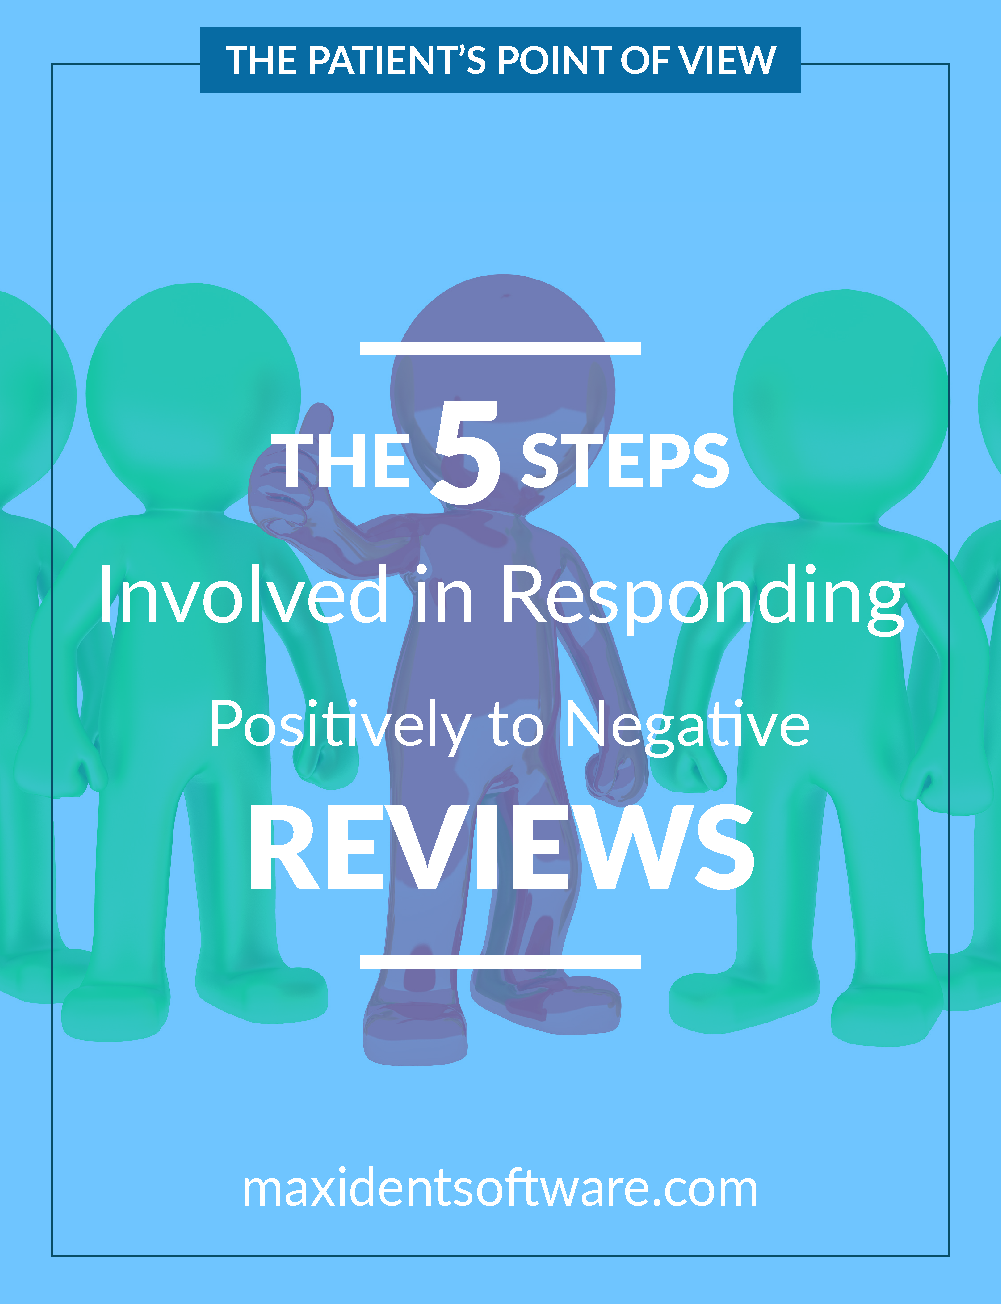 The 5 Steps Involved in Responding Positively to Negative Reviews